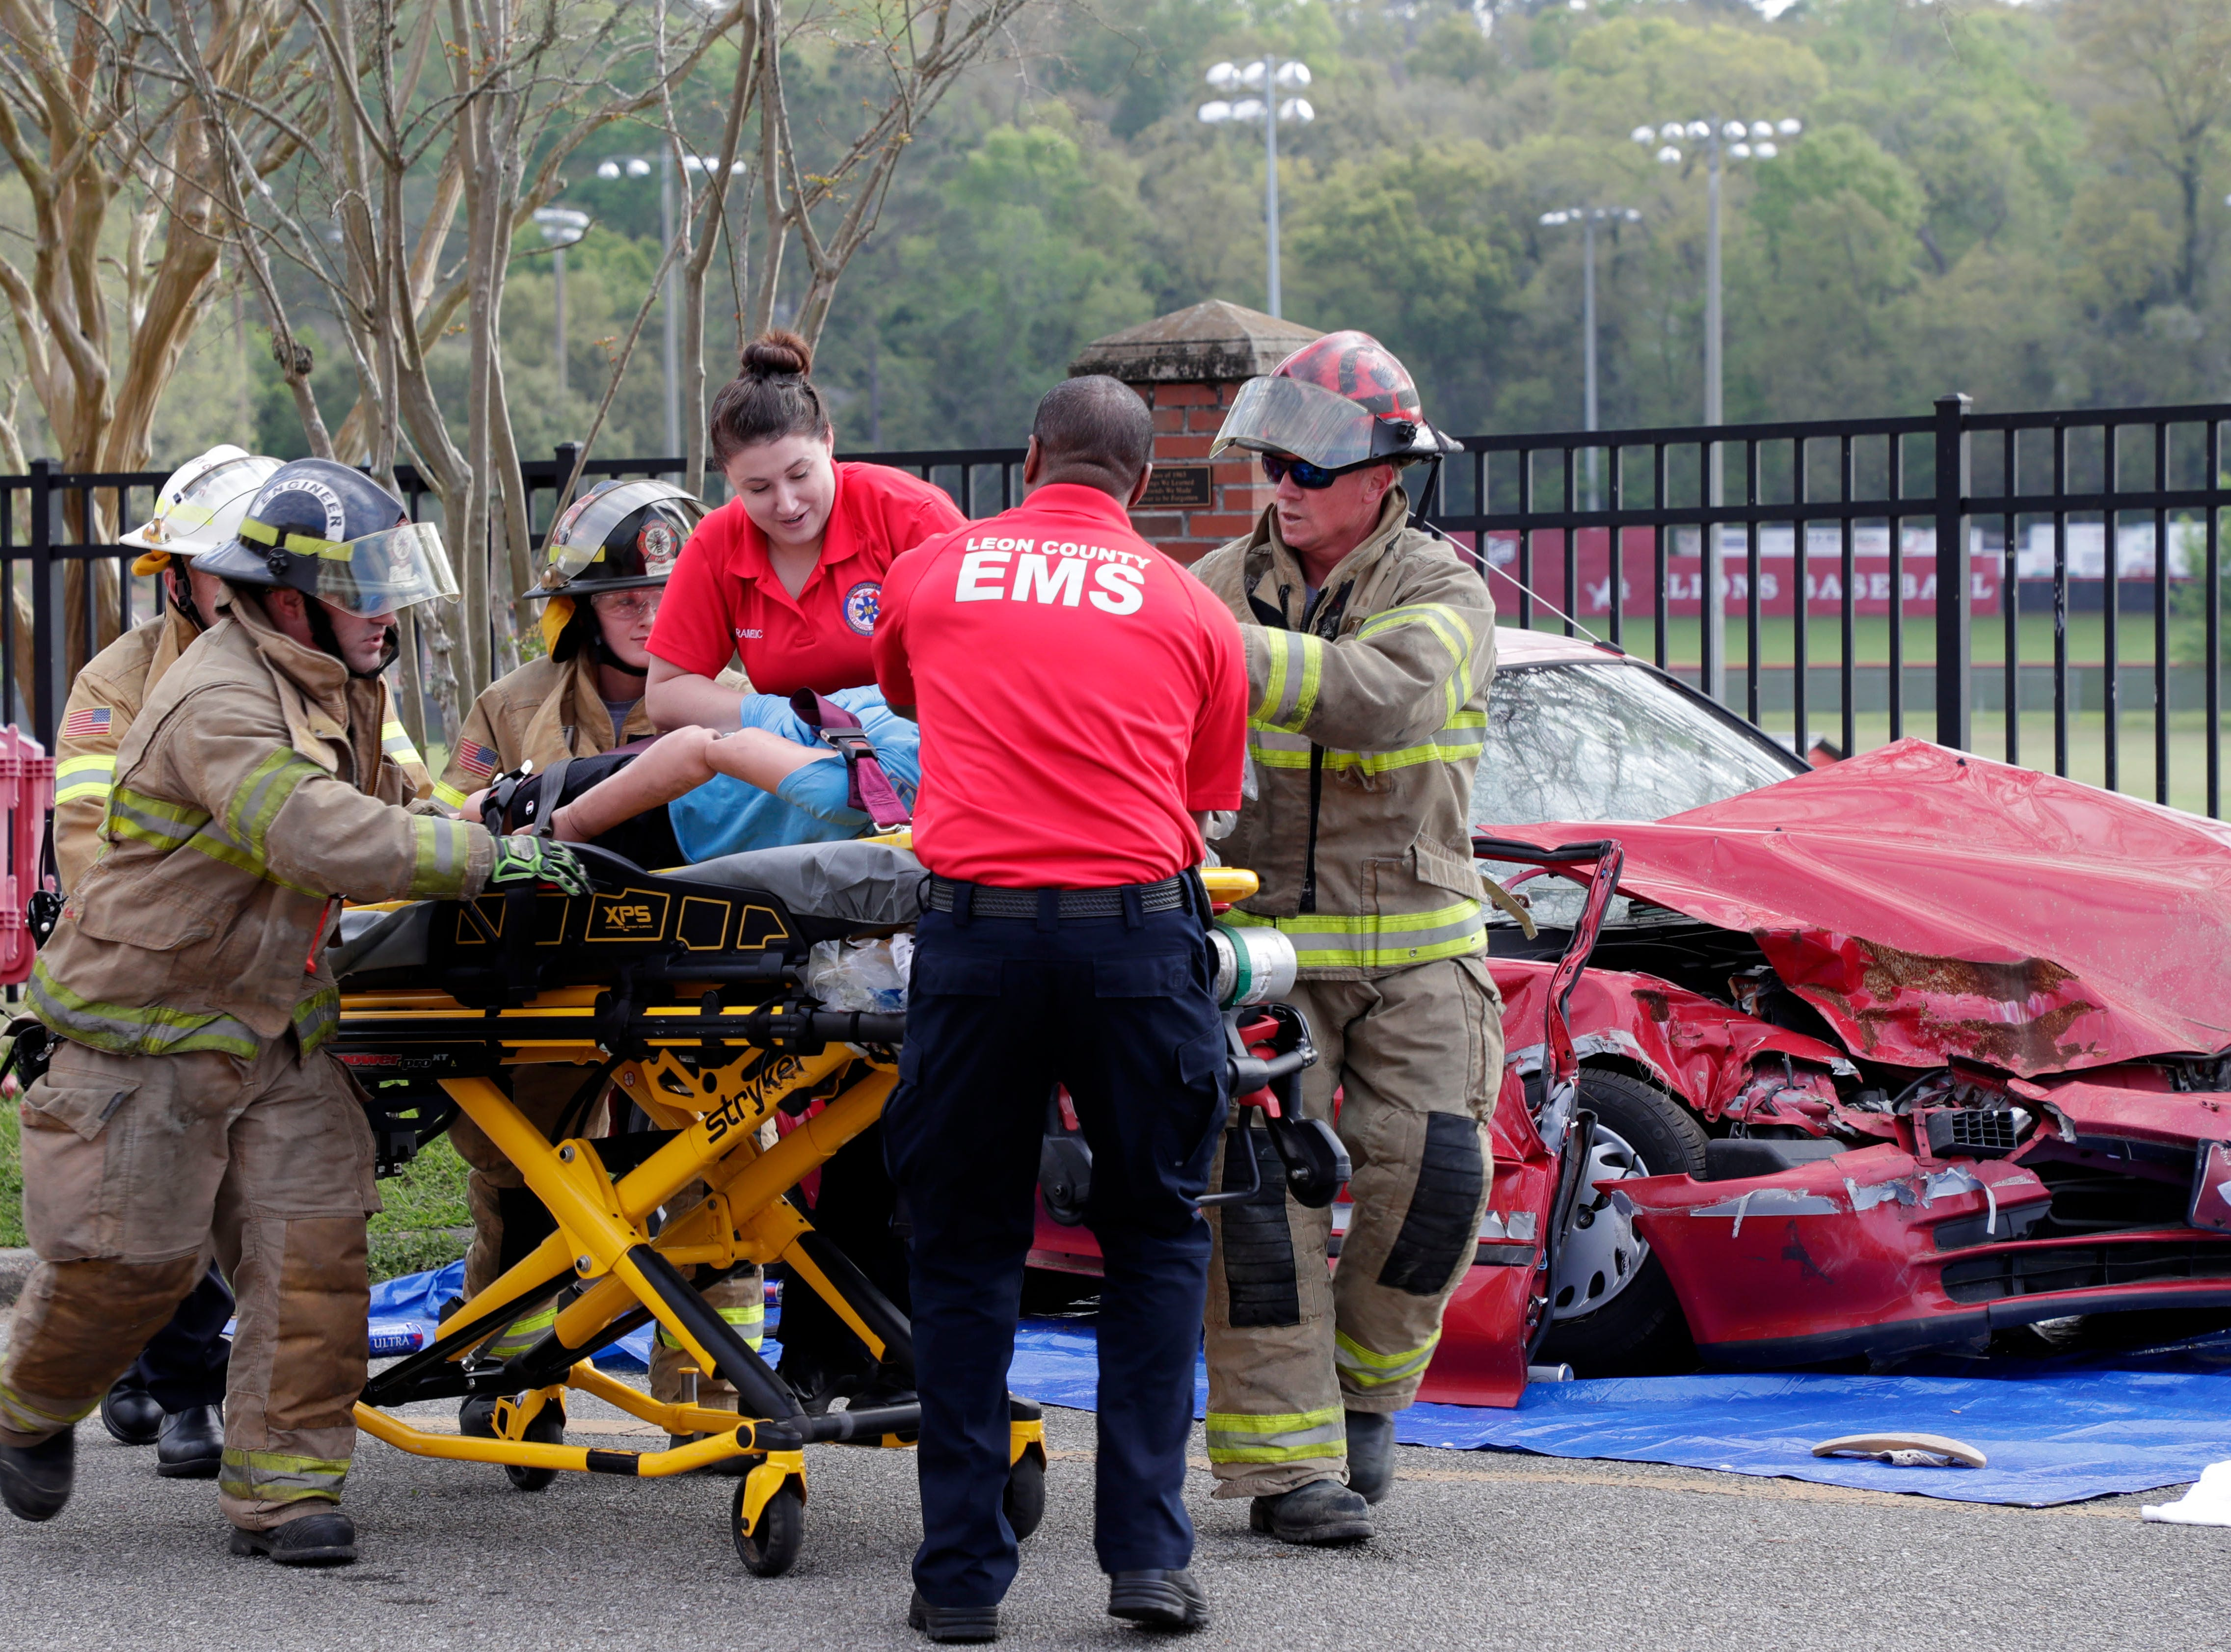 Leon County firefighters and paramedics rush a dummy to an ambulance. Leon High School partners with the county safety officials to give a simulation on the consequences of drunk driving before the students leave for spring break Friday, March 15, 2019.